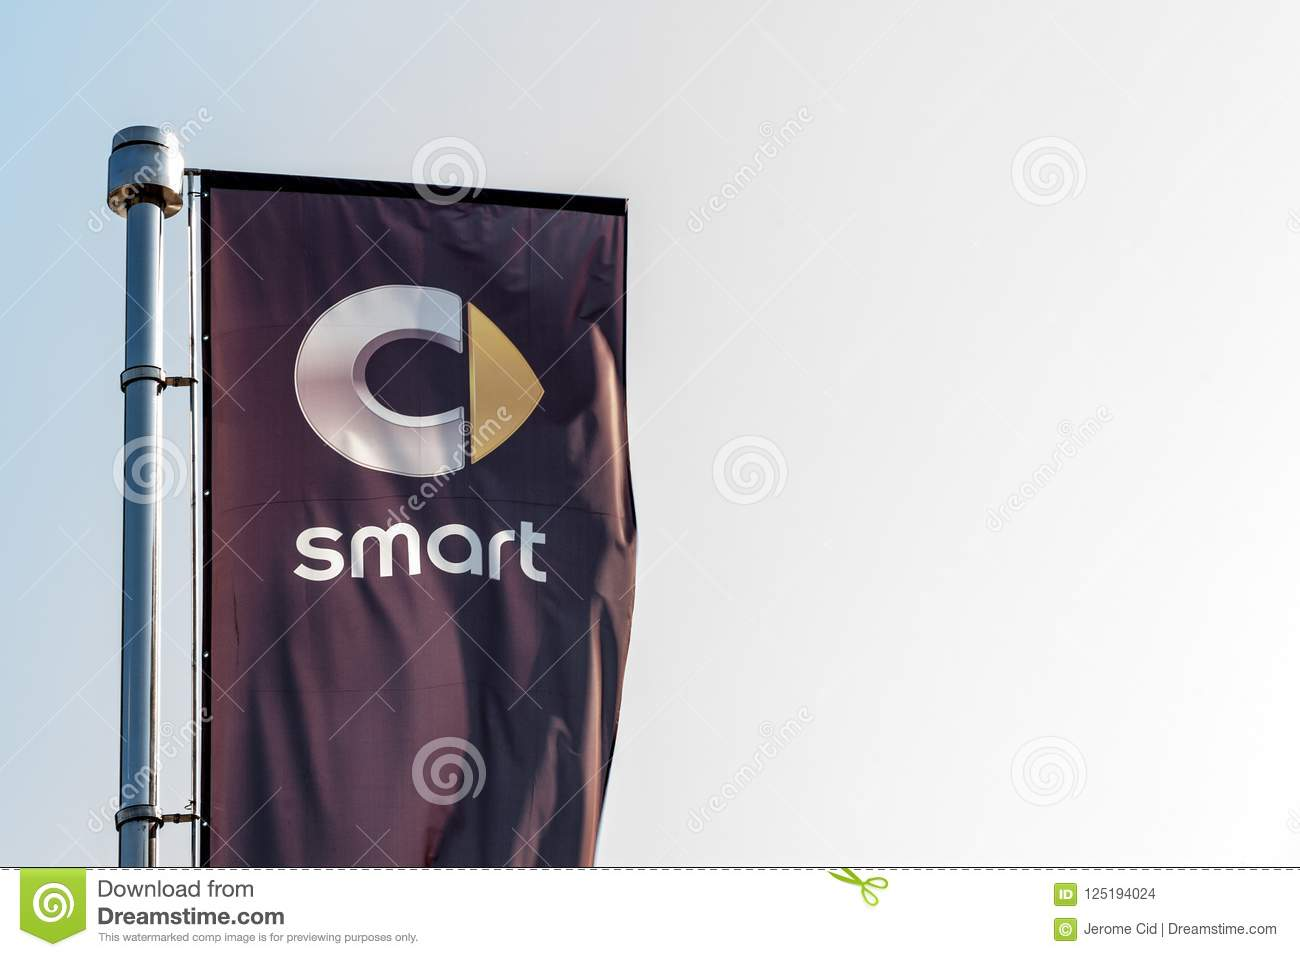 Logo Of Smart On A Flag In Front Of Its Dealership For Belgrade